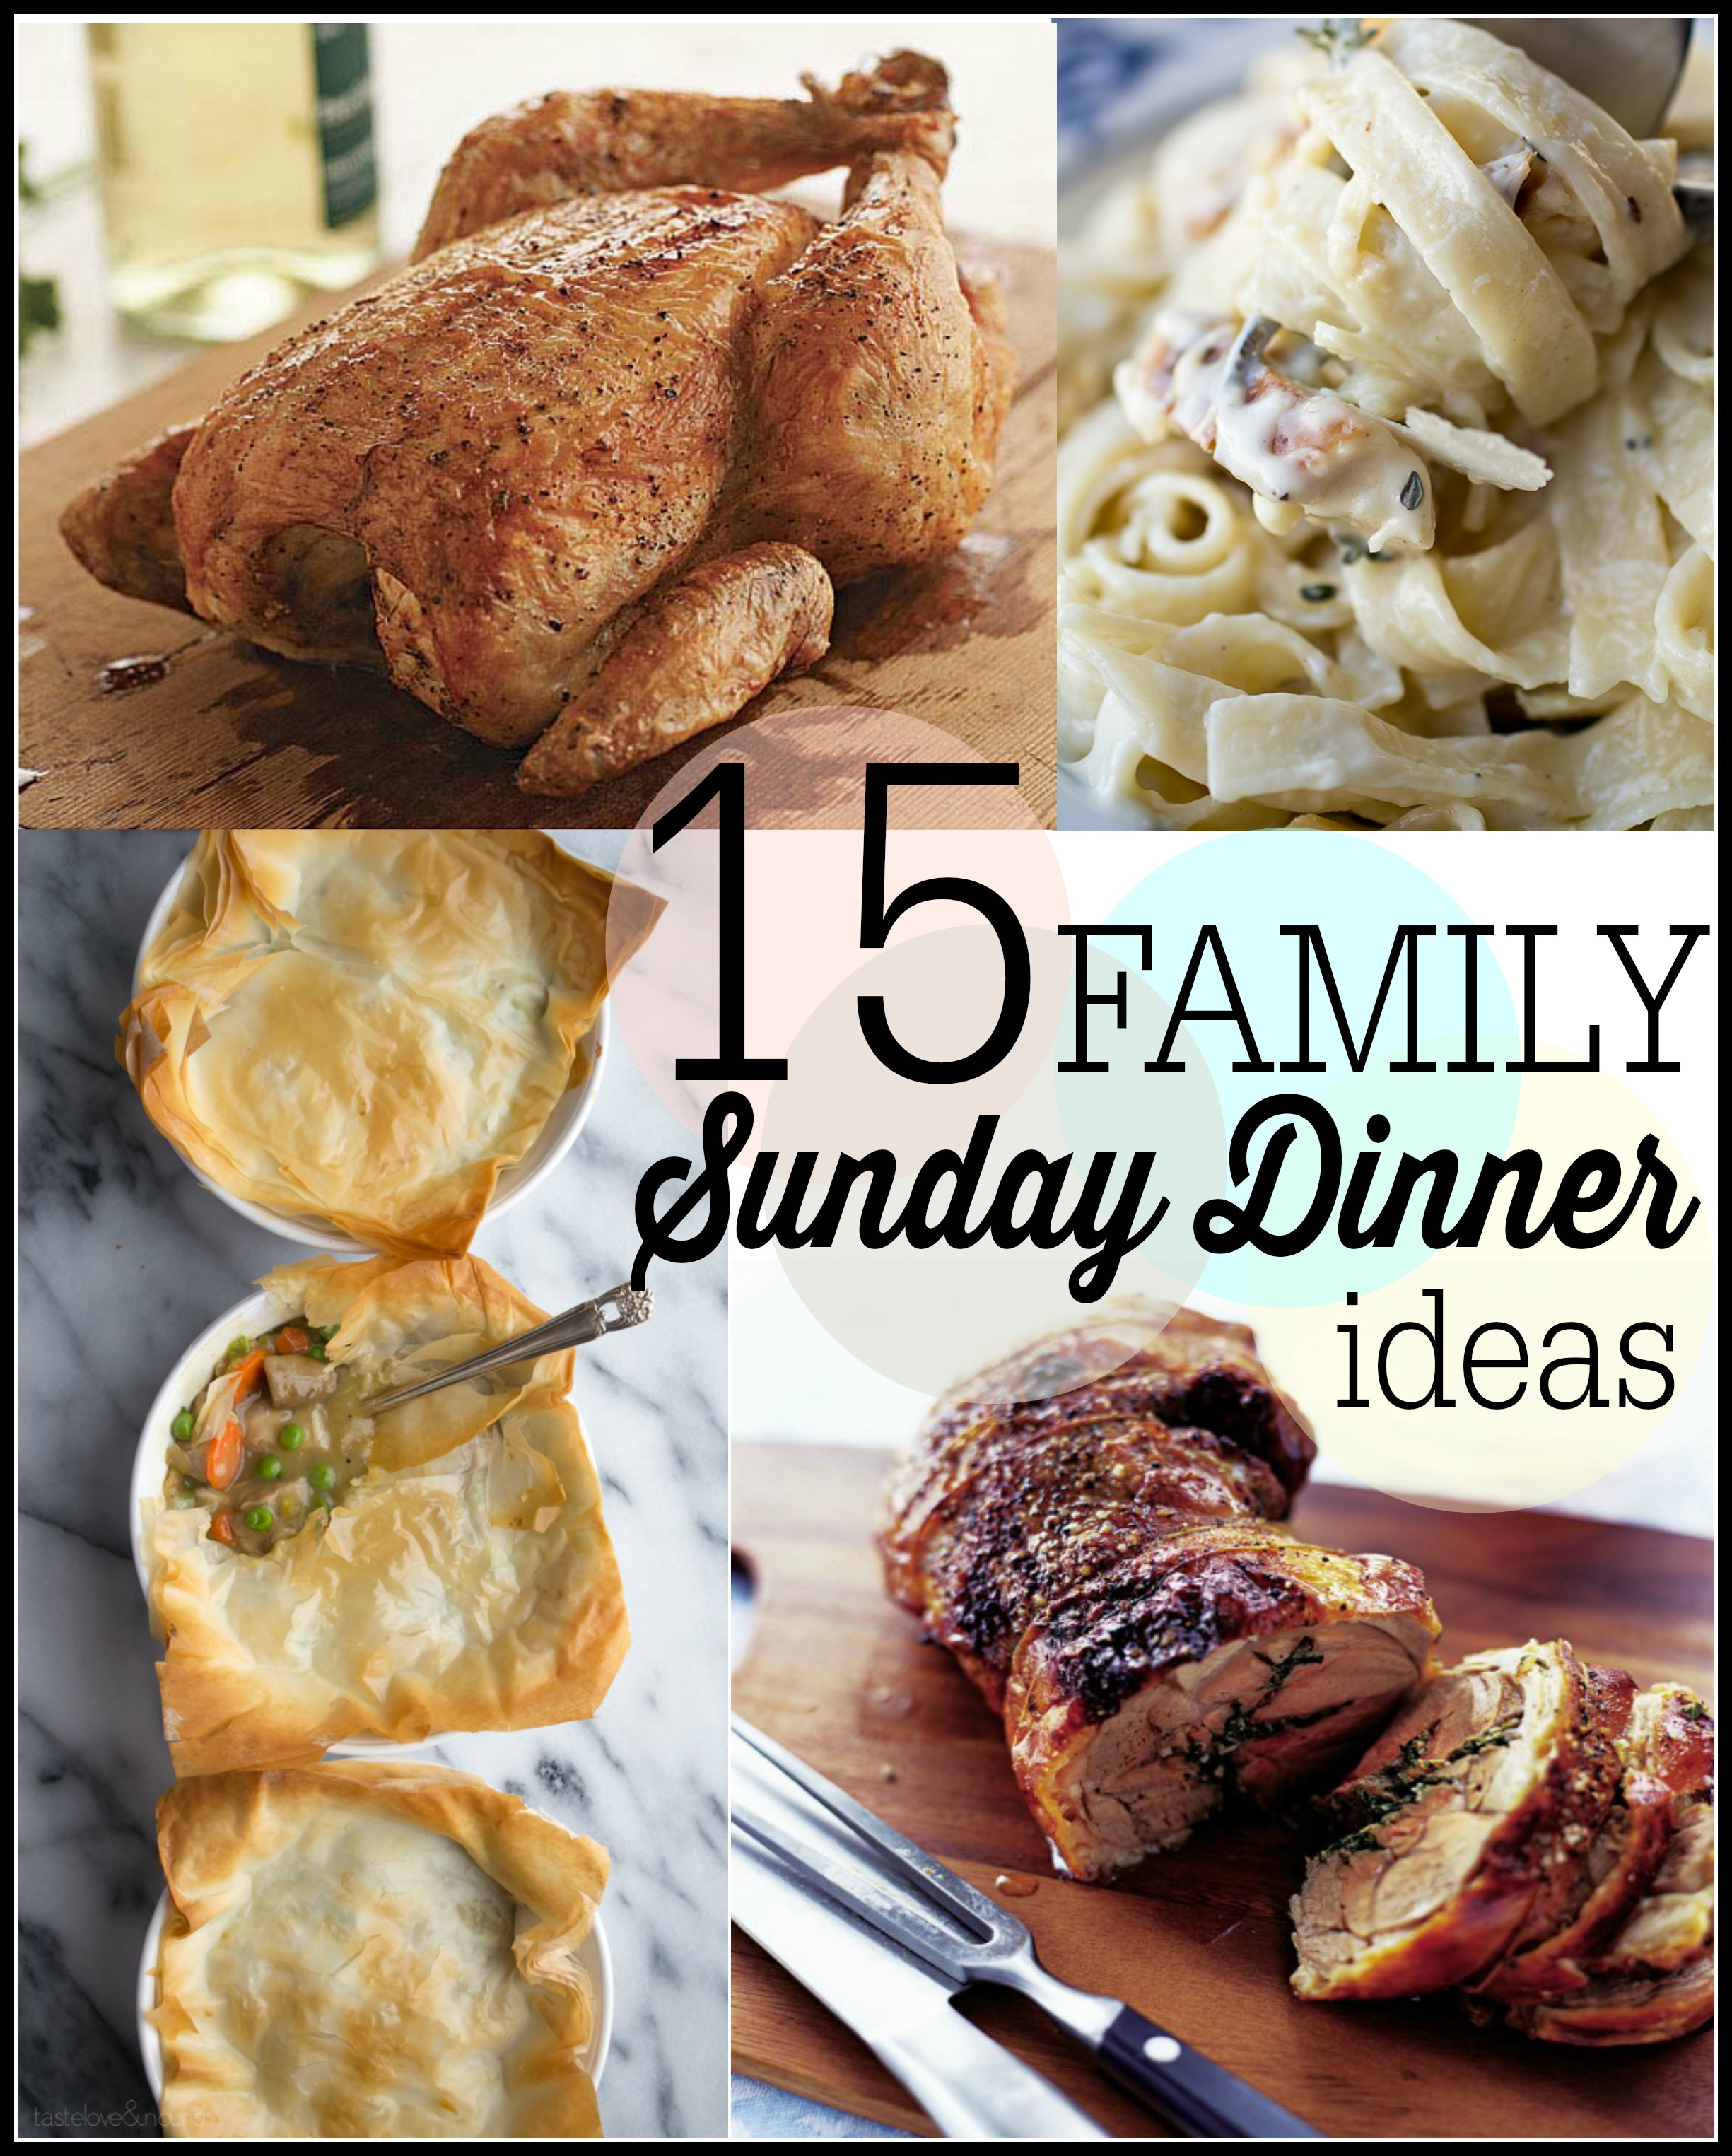 Family Dinner Ideas